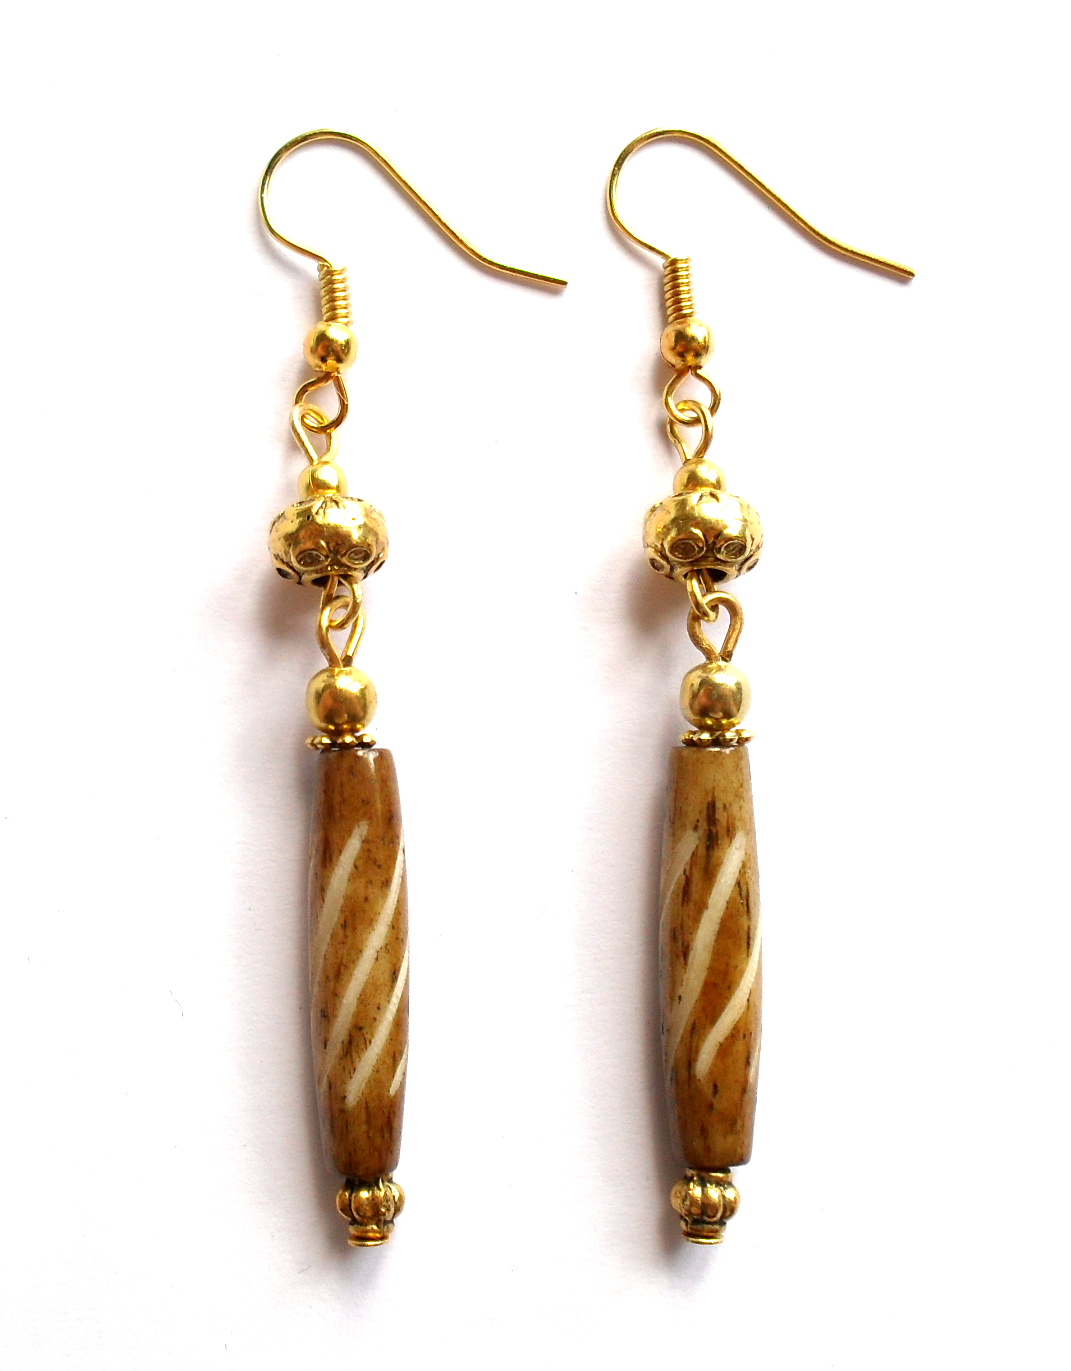 Earrings with wood beads.